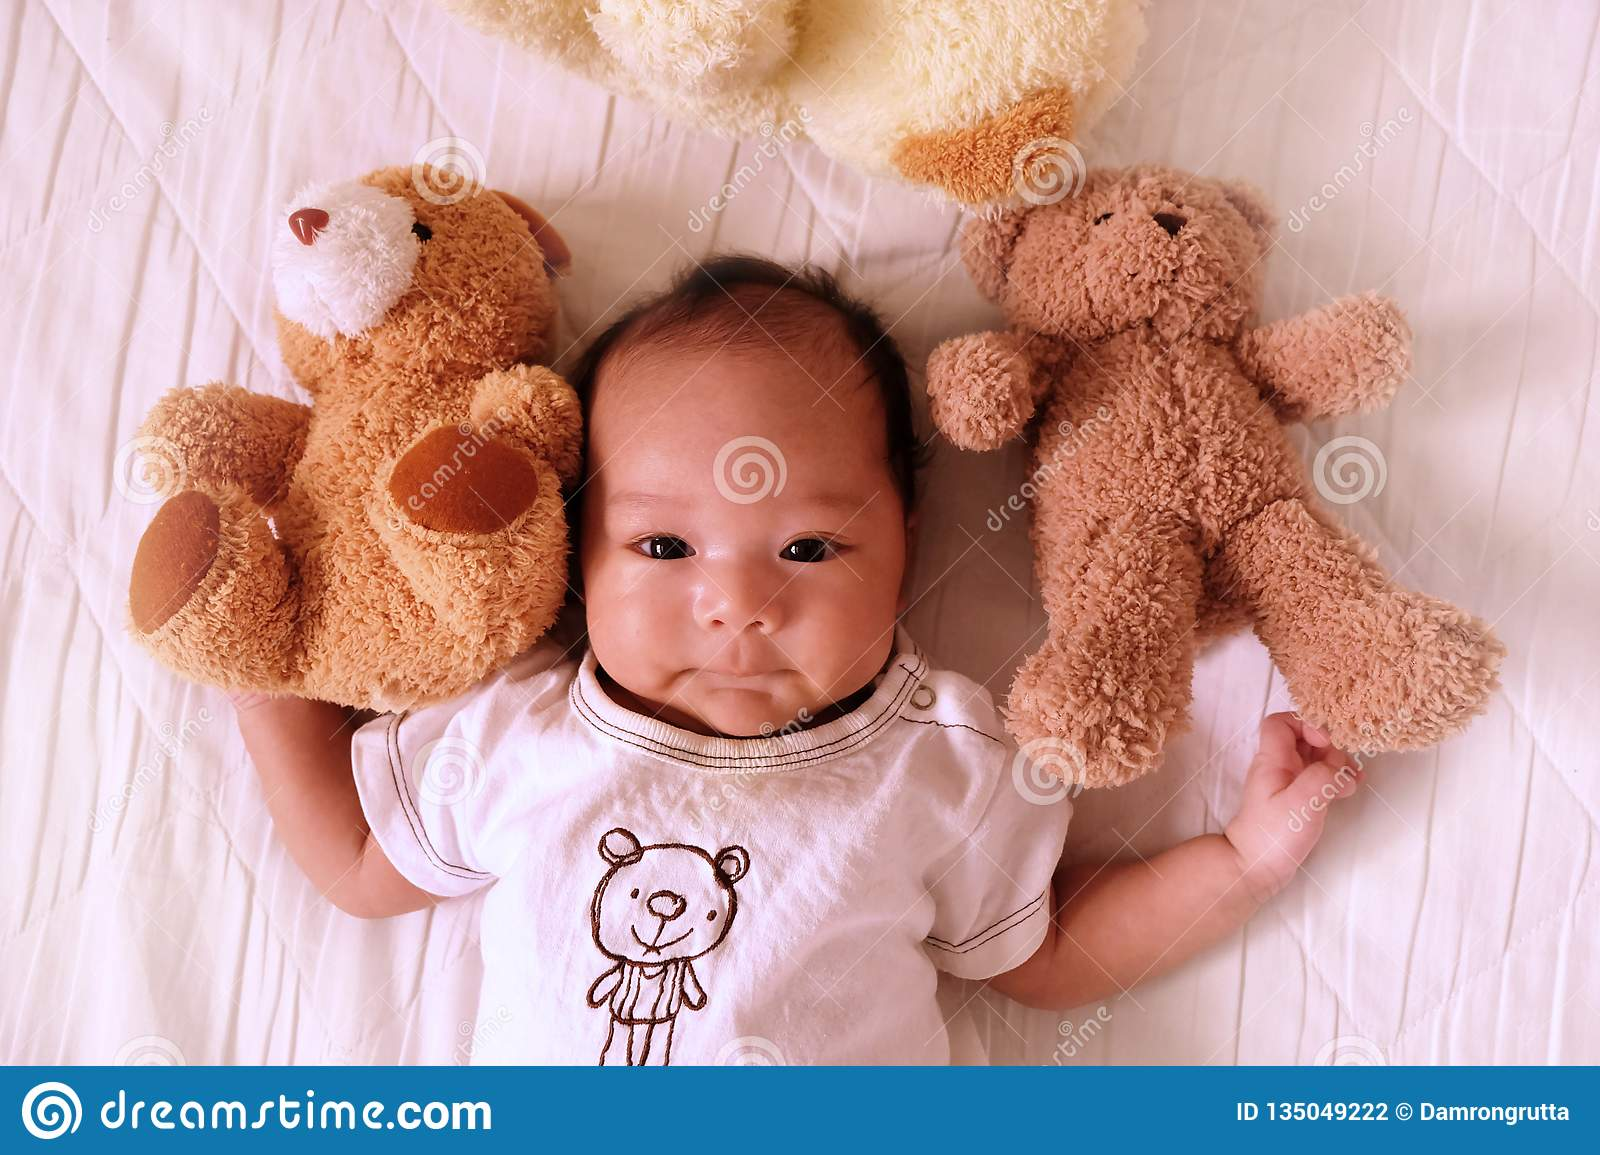 Baby Newborn Teddy Asian Cute Baby Newborn Smile And Happy Good Mood On The